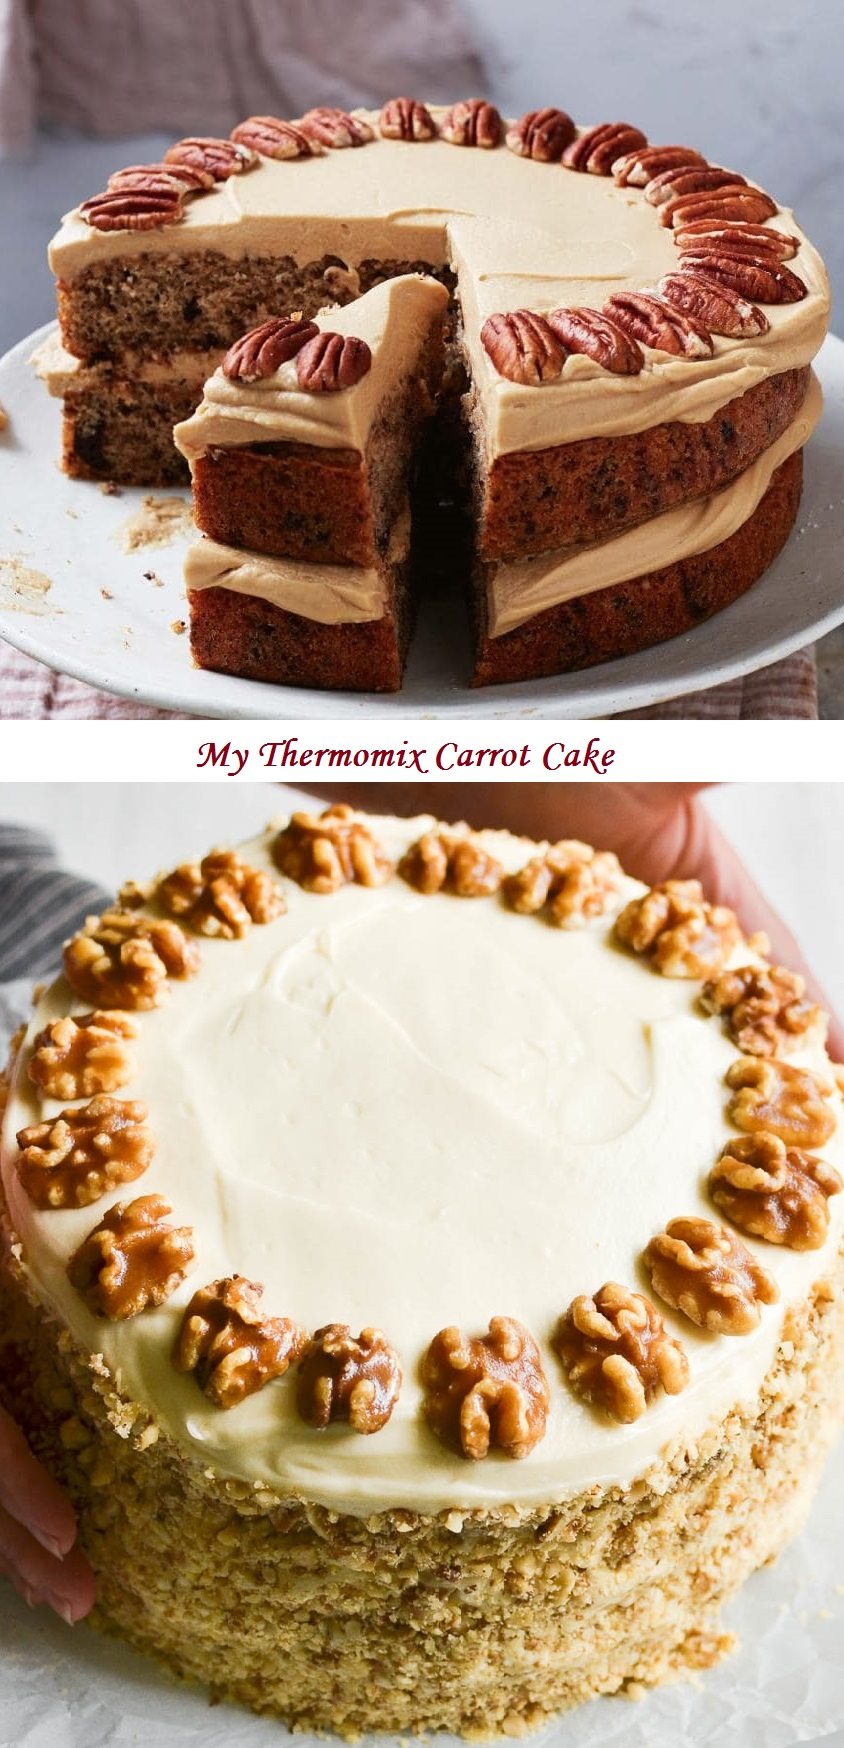 My Thermomix Carrot Cake